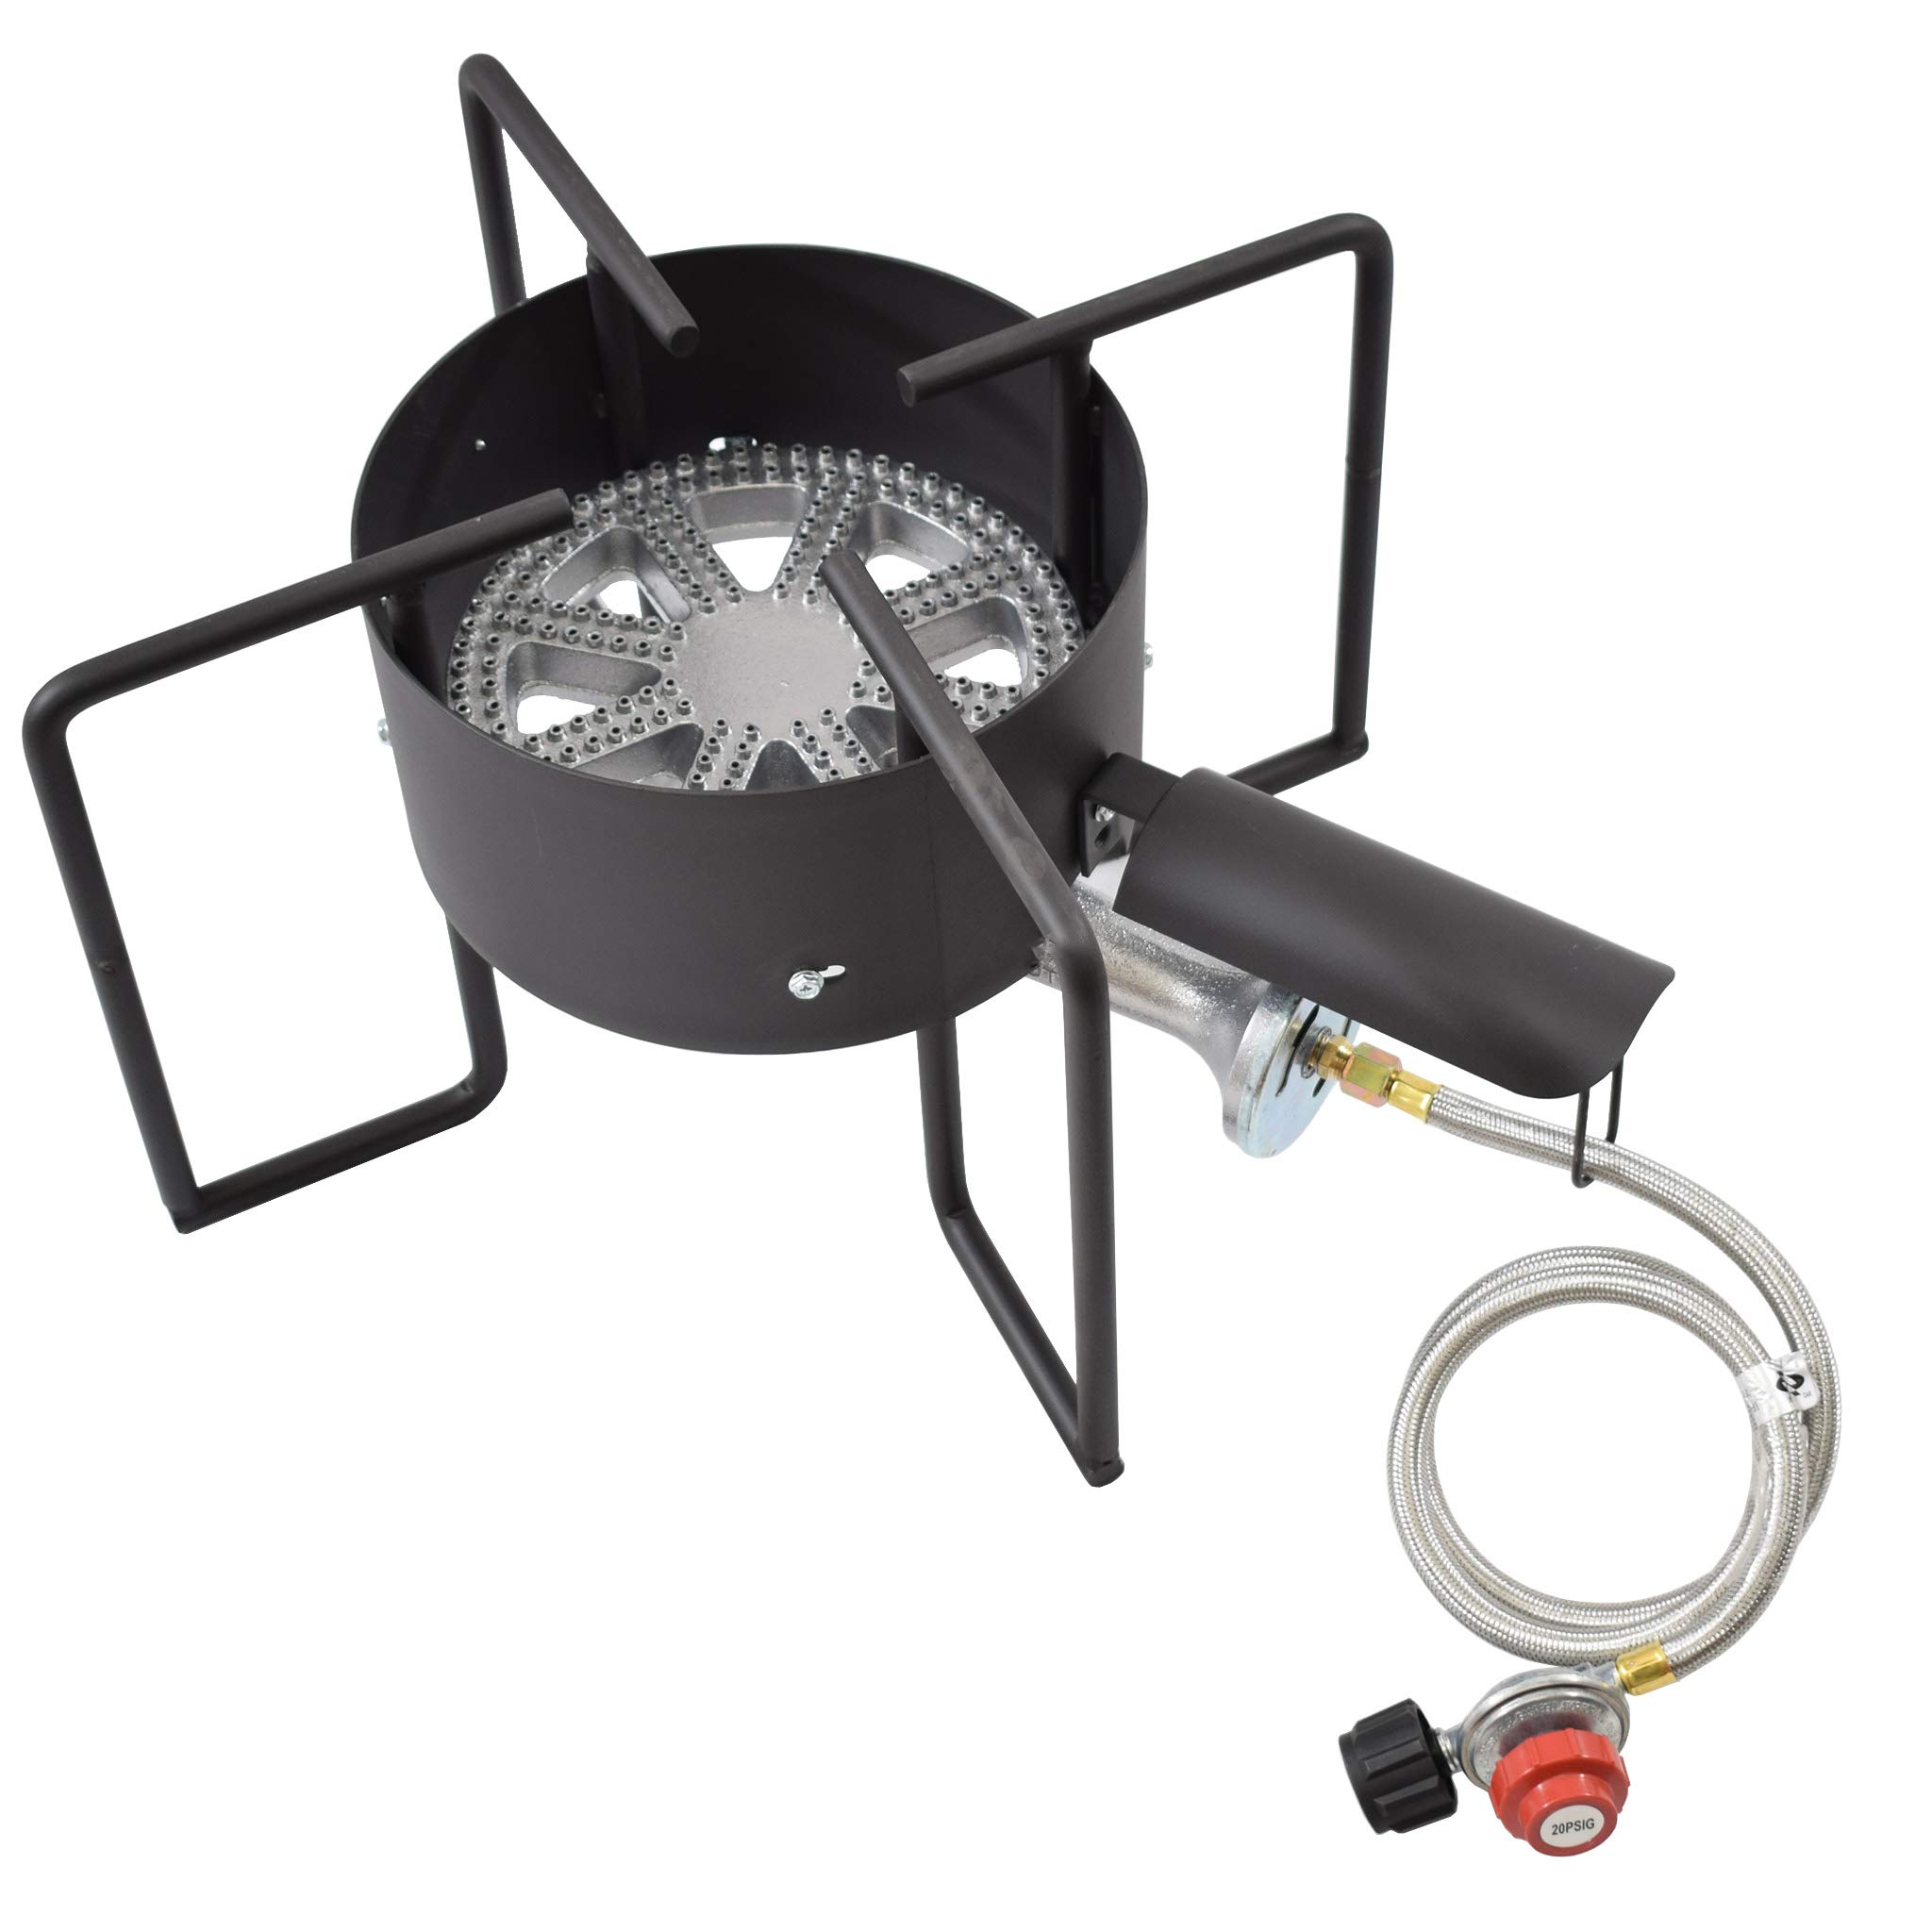 COOKAMP High Pressure Banjo 1-Burner Outdoor Propane Gas Cooker with 0-20 PSI Adjustable Regulator and Steel Braided Hose SA1450 by COOKAMP